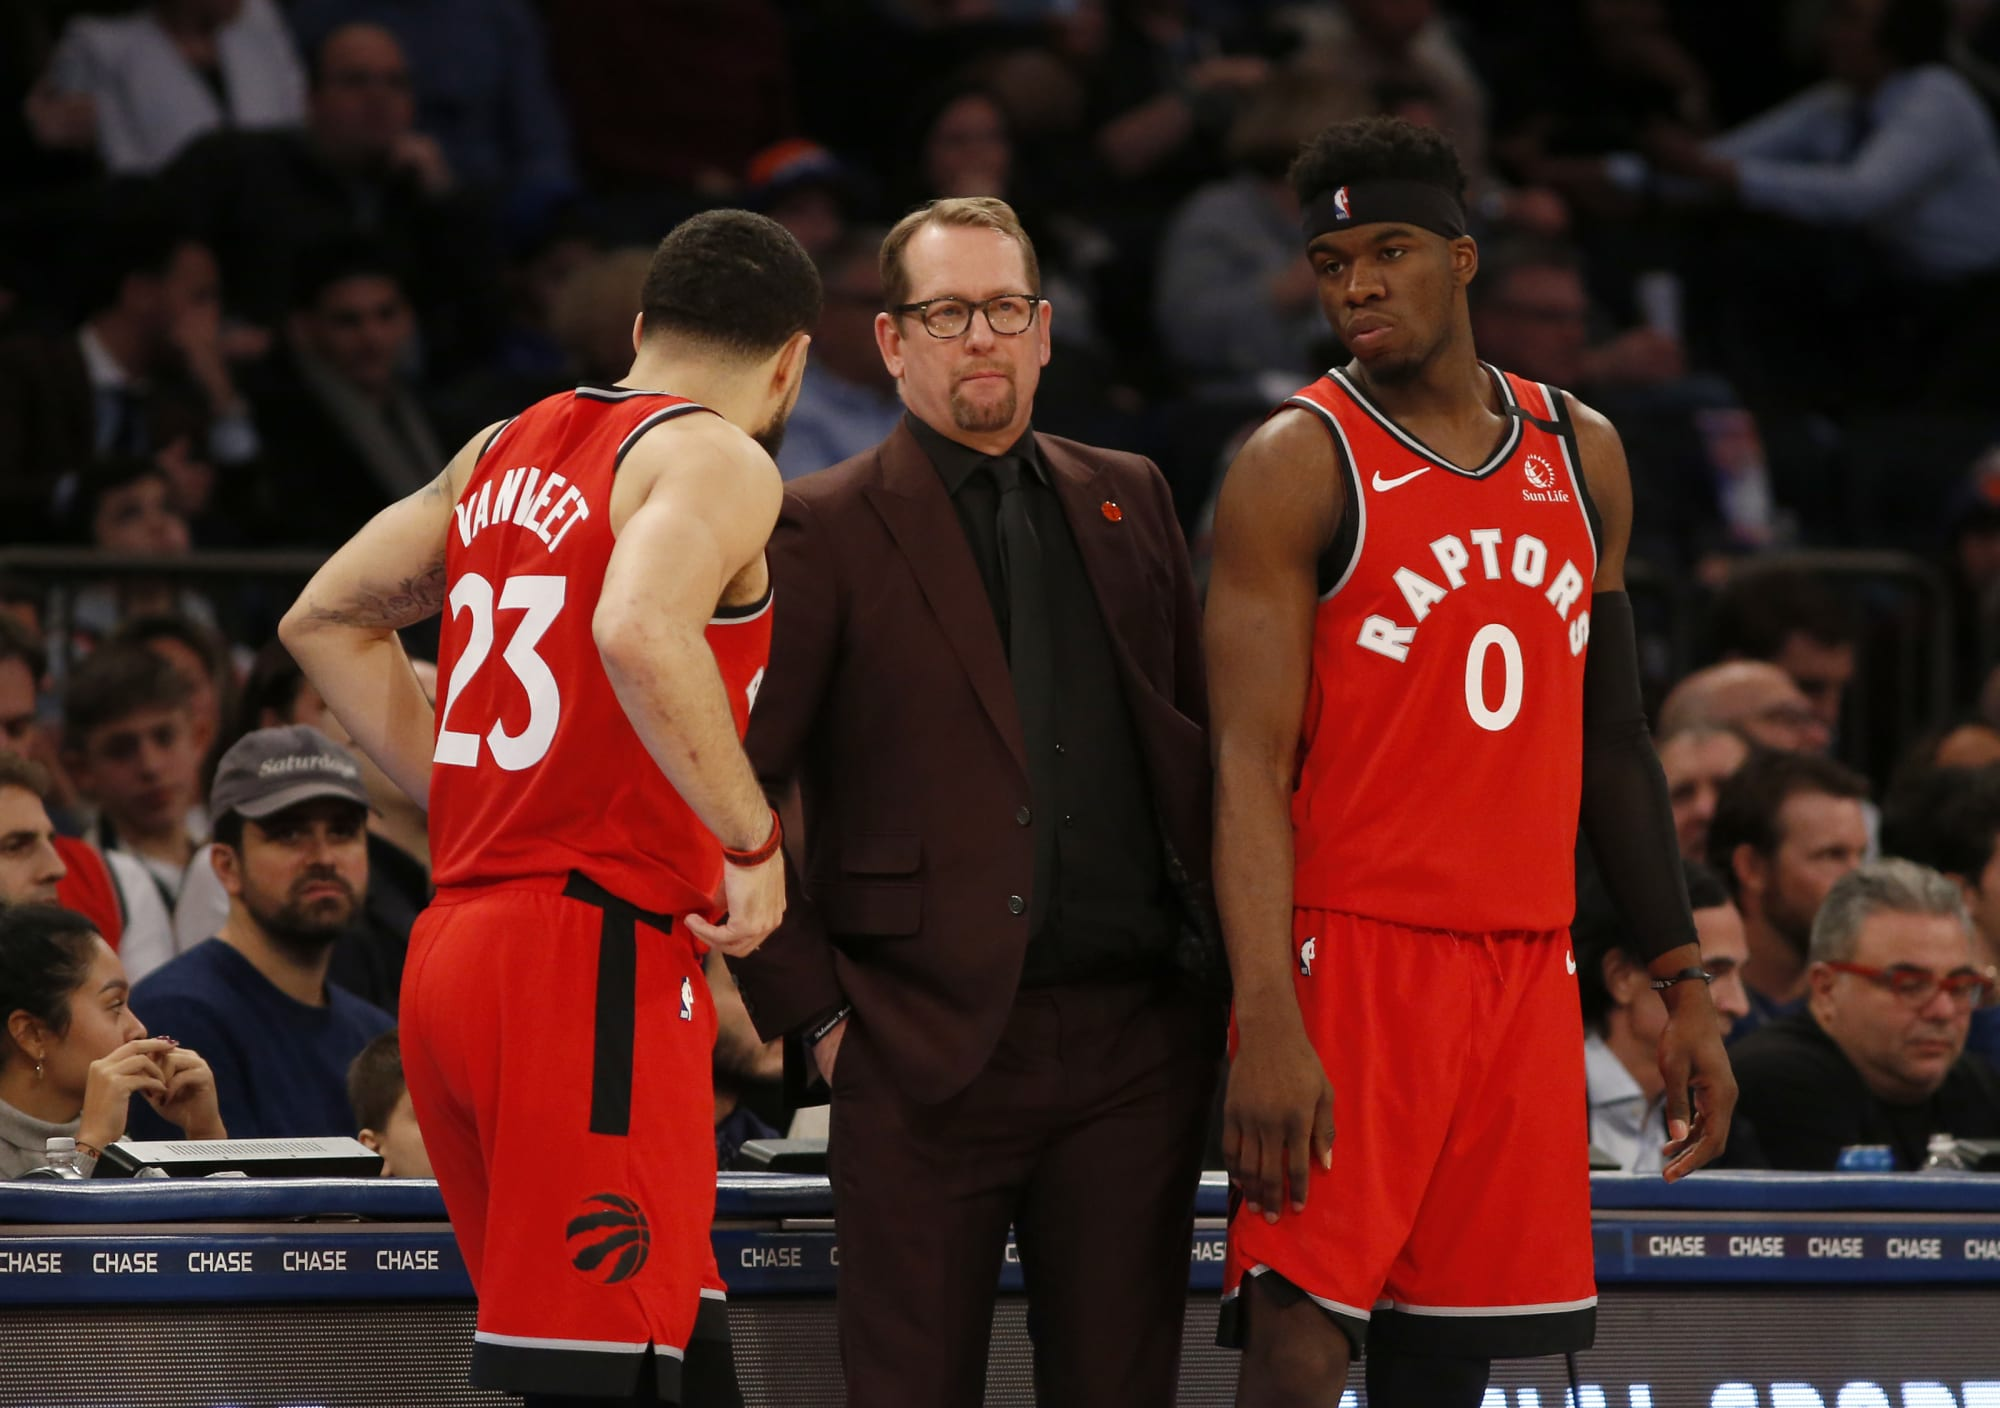 Toronto Raptors: Nick Nurse and his system keeps Toronto competitive and helps the NBA